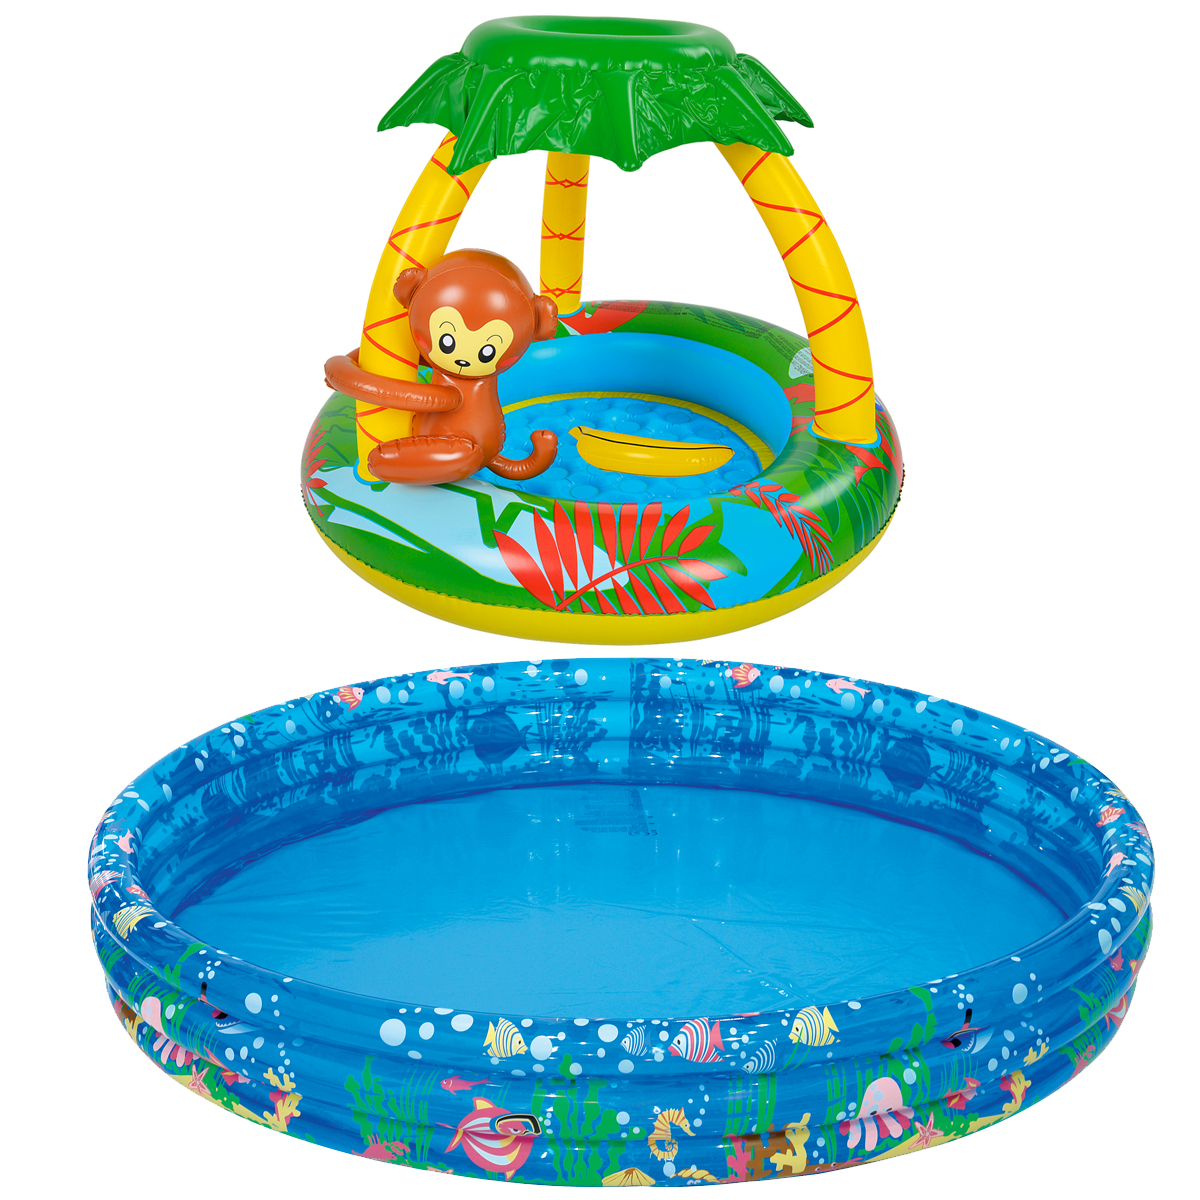 Details about BABY TODDLER INFLATABLE MONKEY / TROPICAL SWIMMING PADDLING  POOL KIDS FILL N FUN